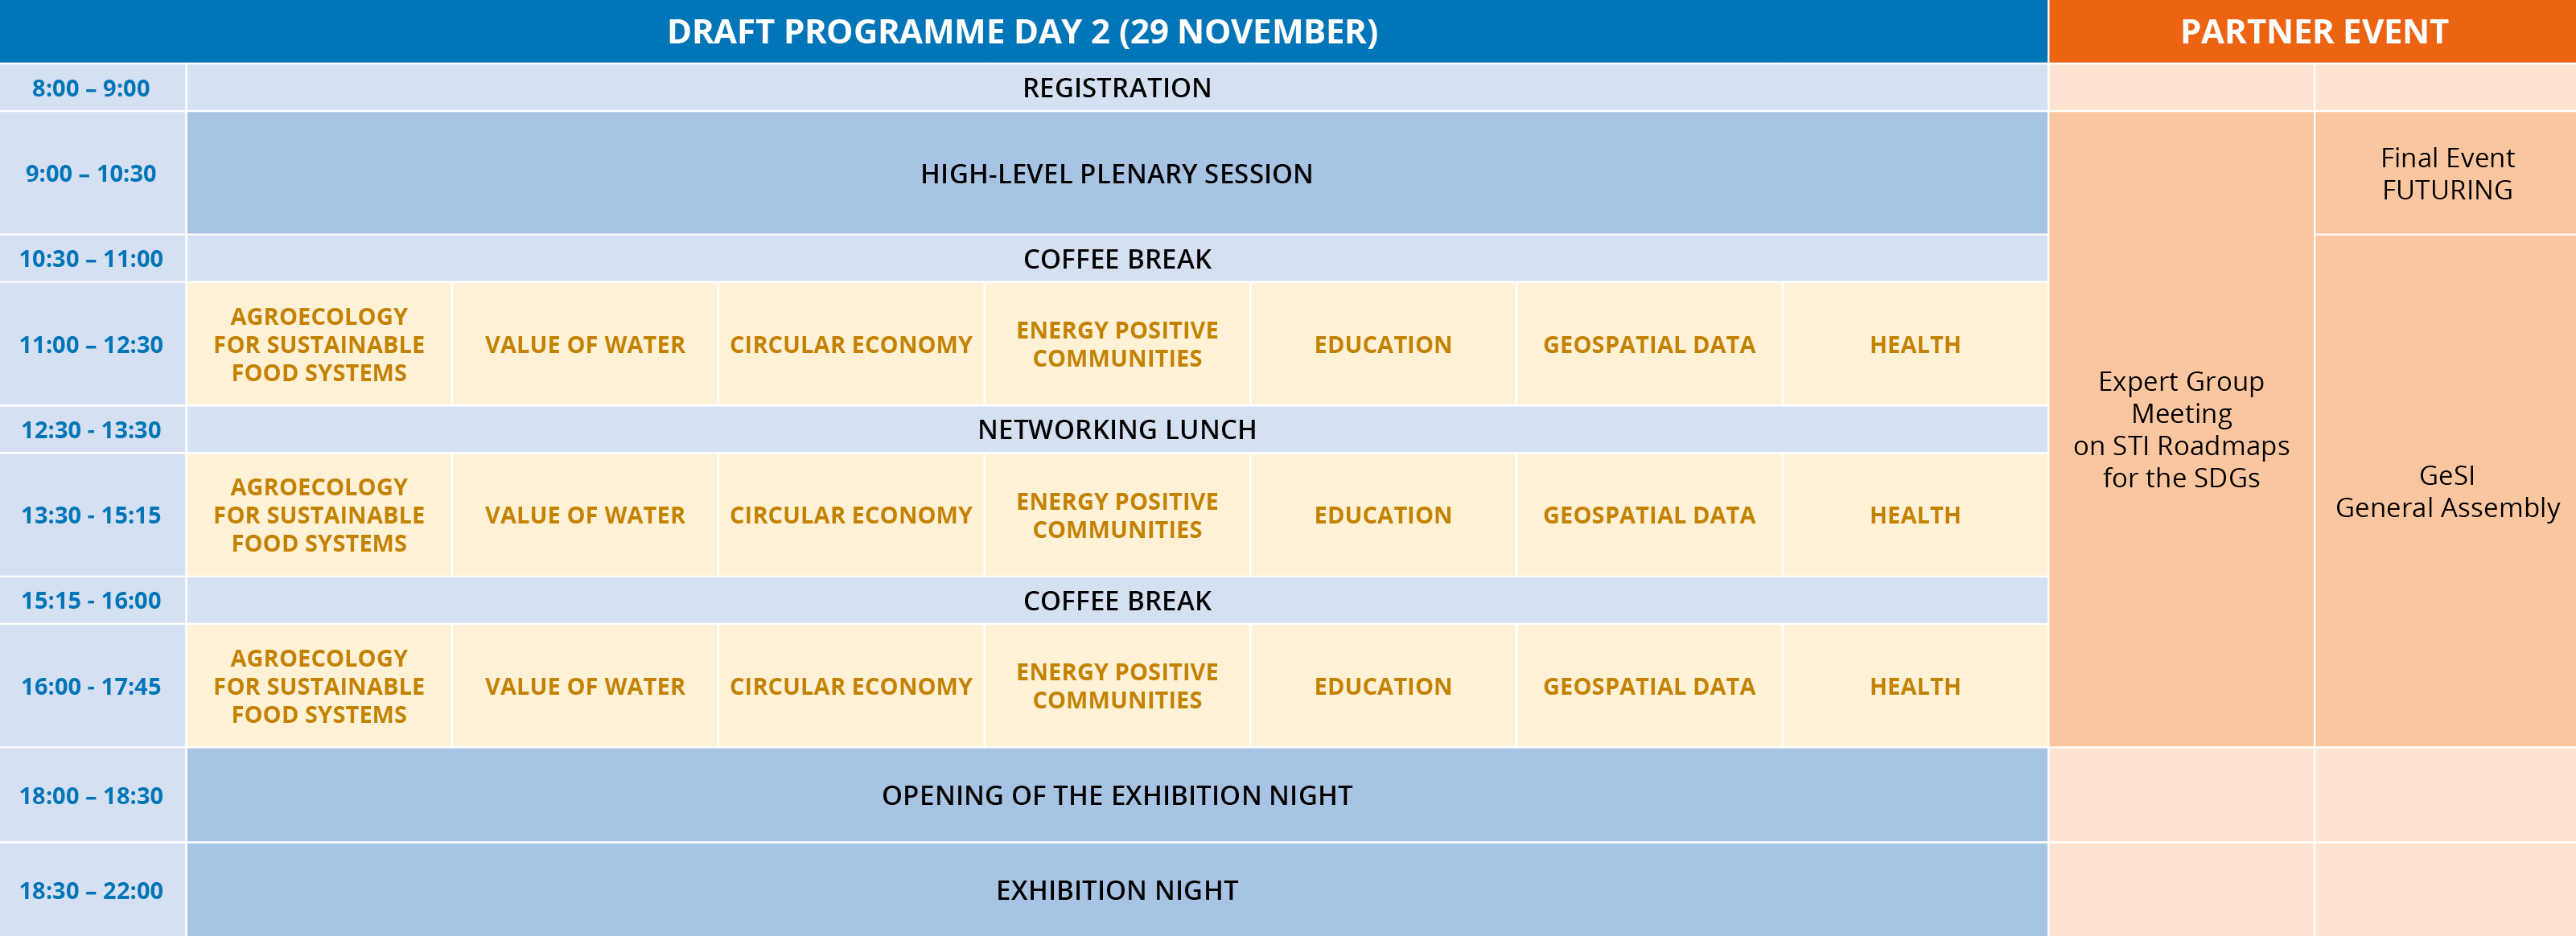 G-STIC 2018 Programme Day 2